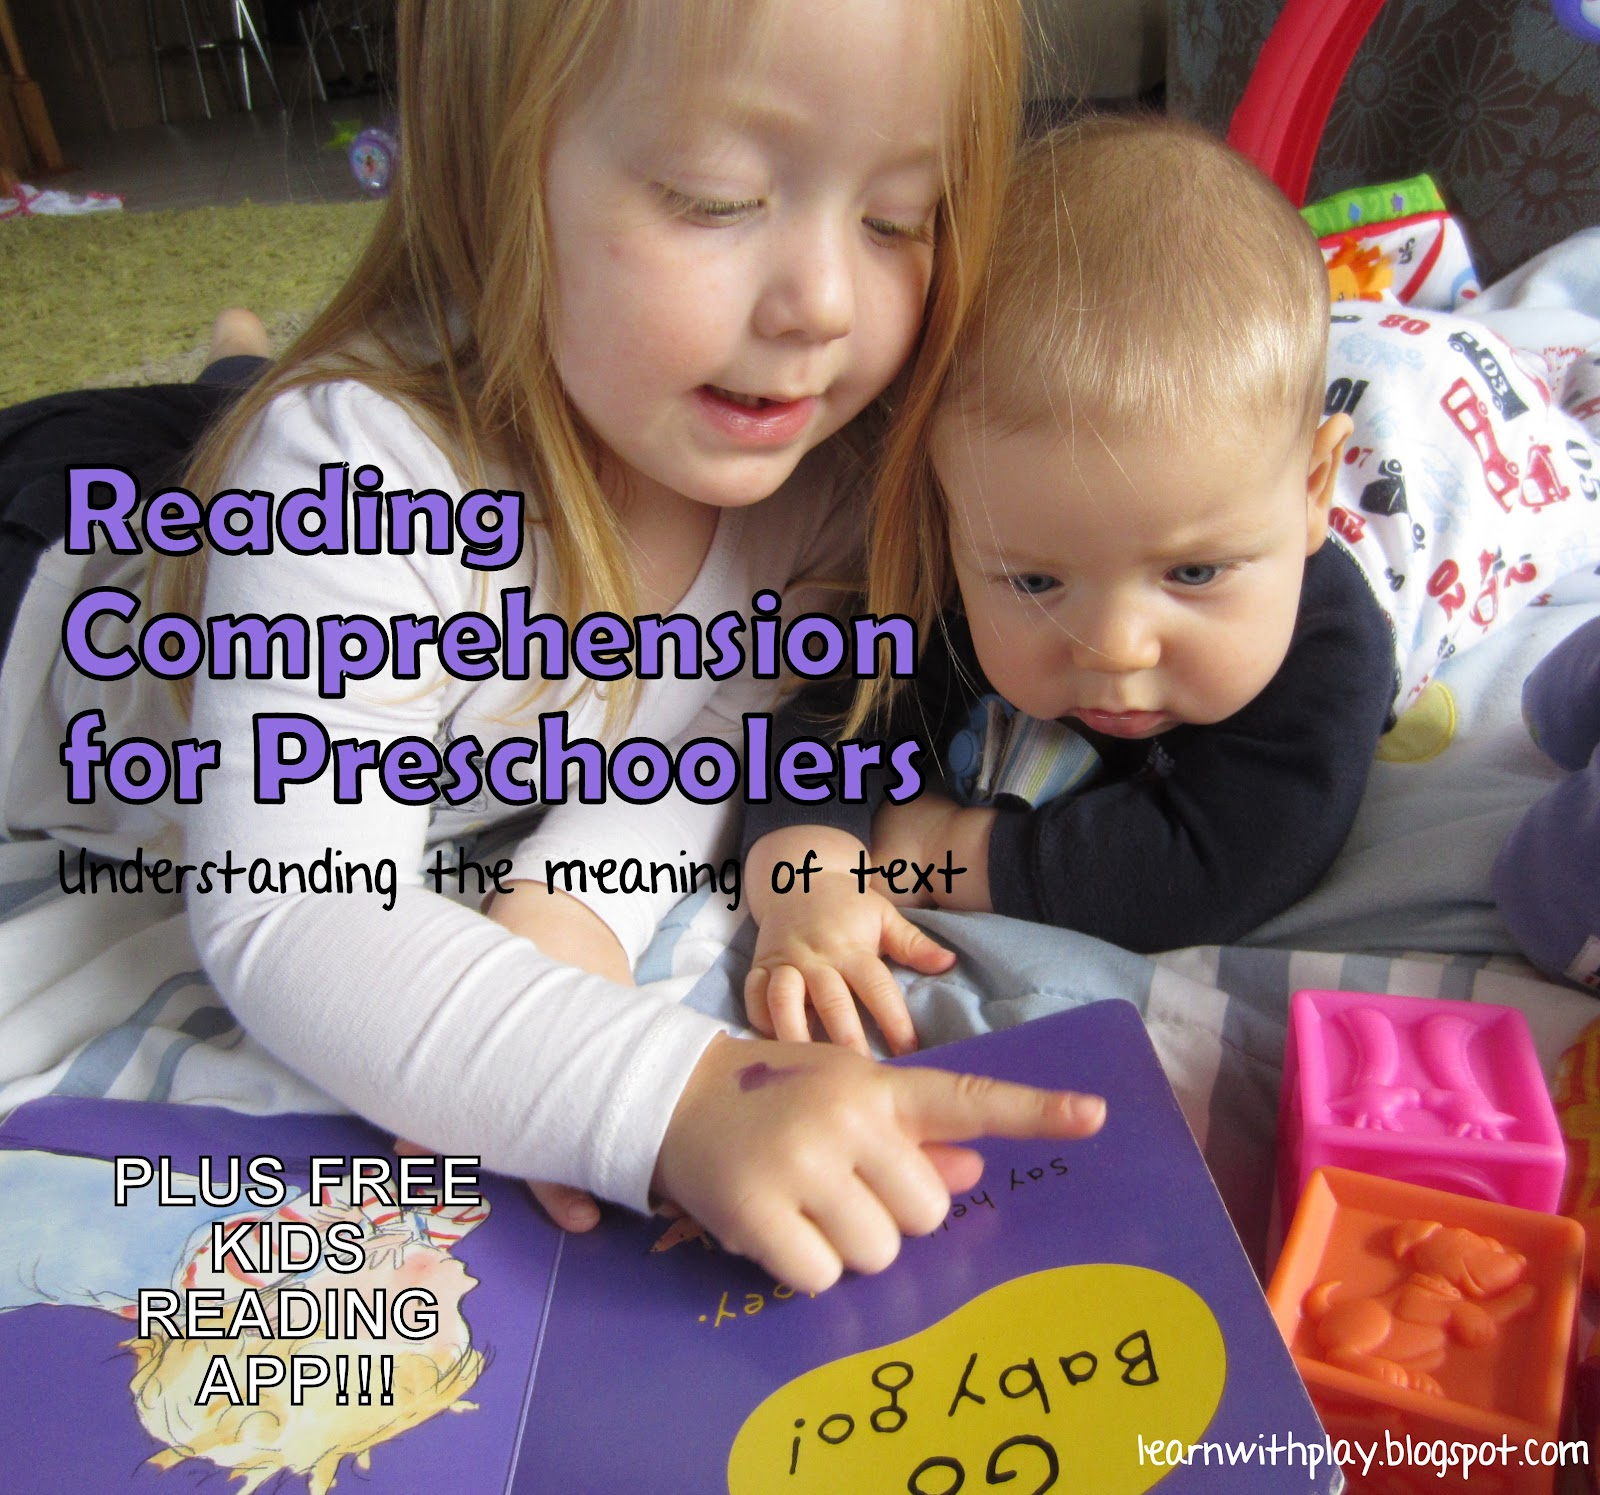 Learn with Play at Home: Reading Comprehension for Preschoolers  5